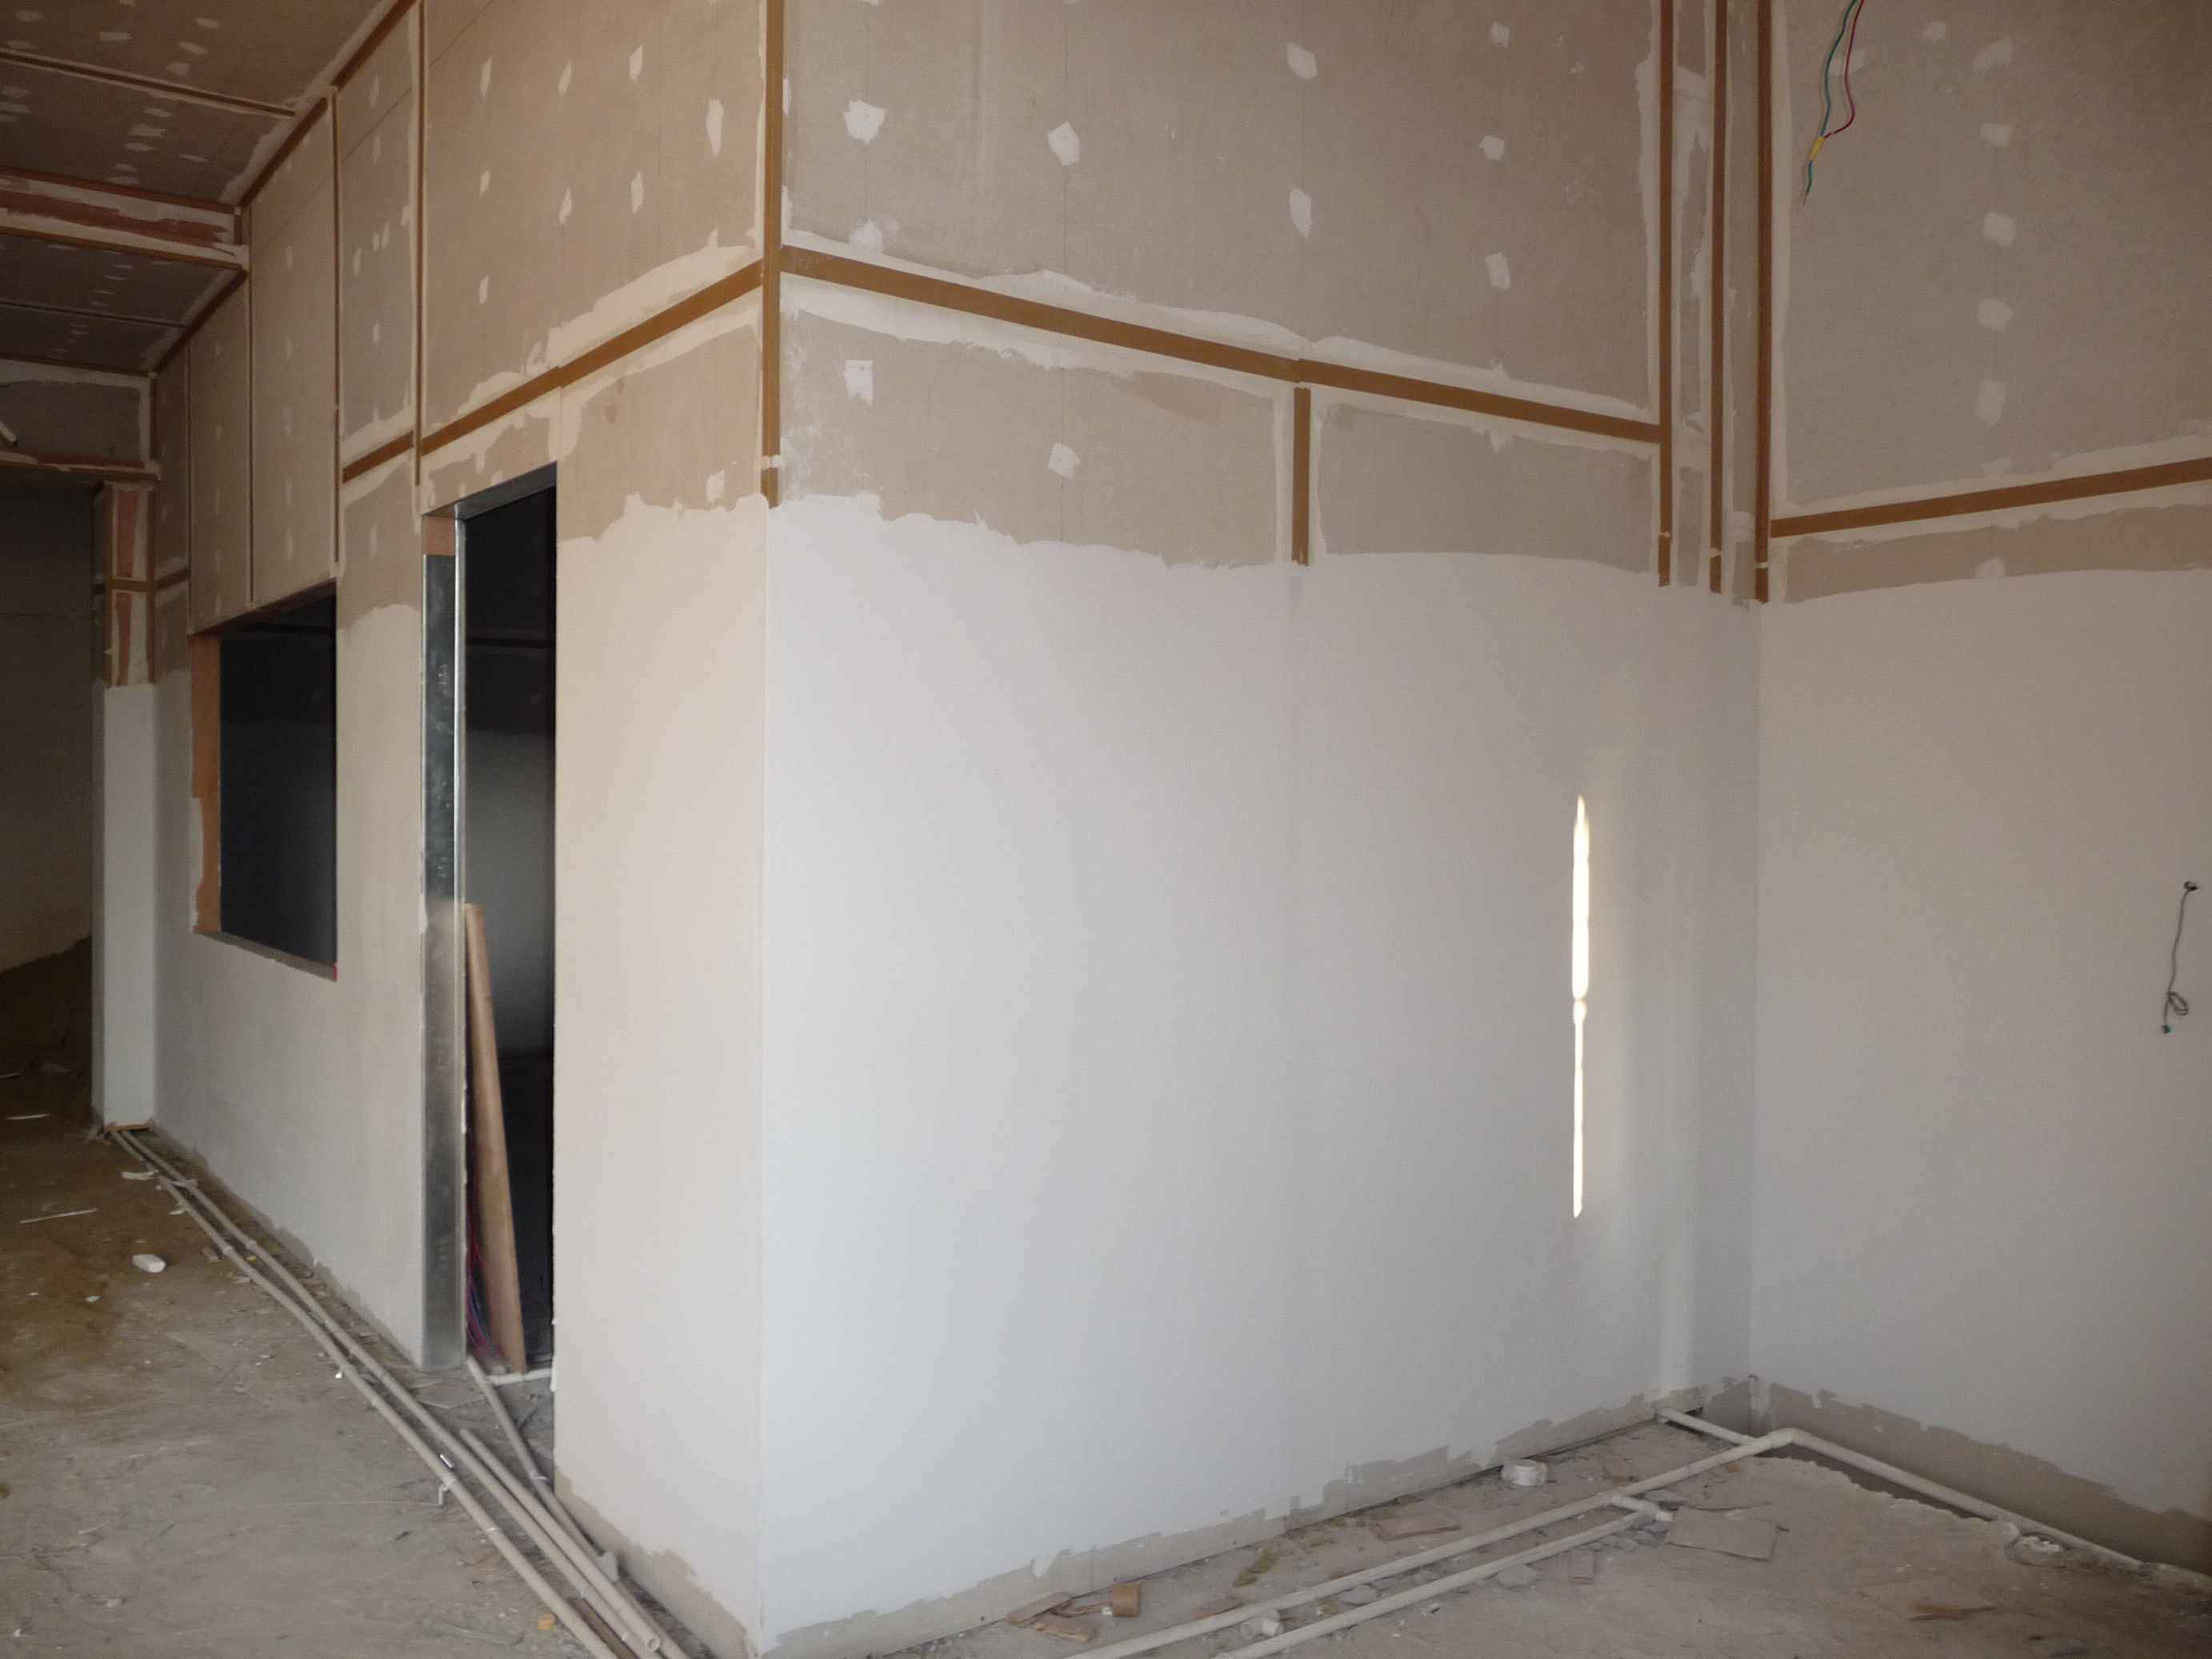 China Bending Sth Fireproof Insulation Materia Calcium Silicate Board For Fireplace Building Material